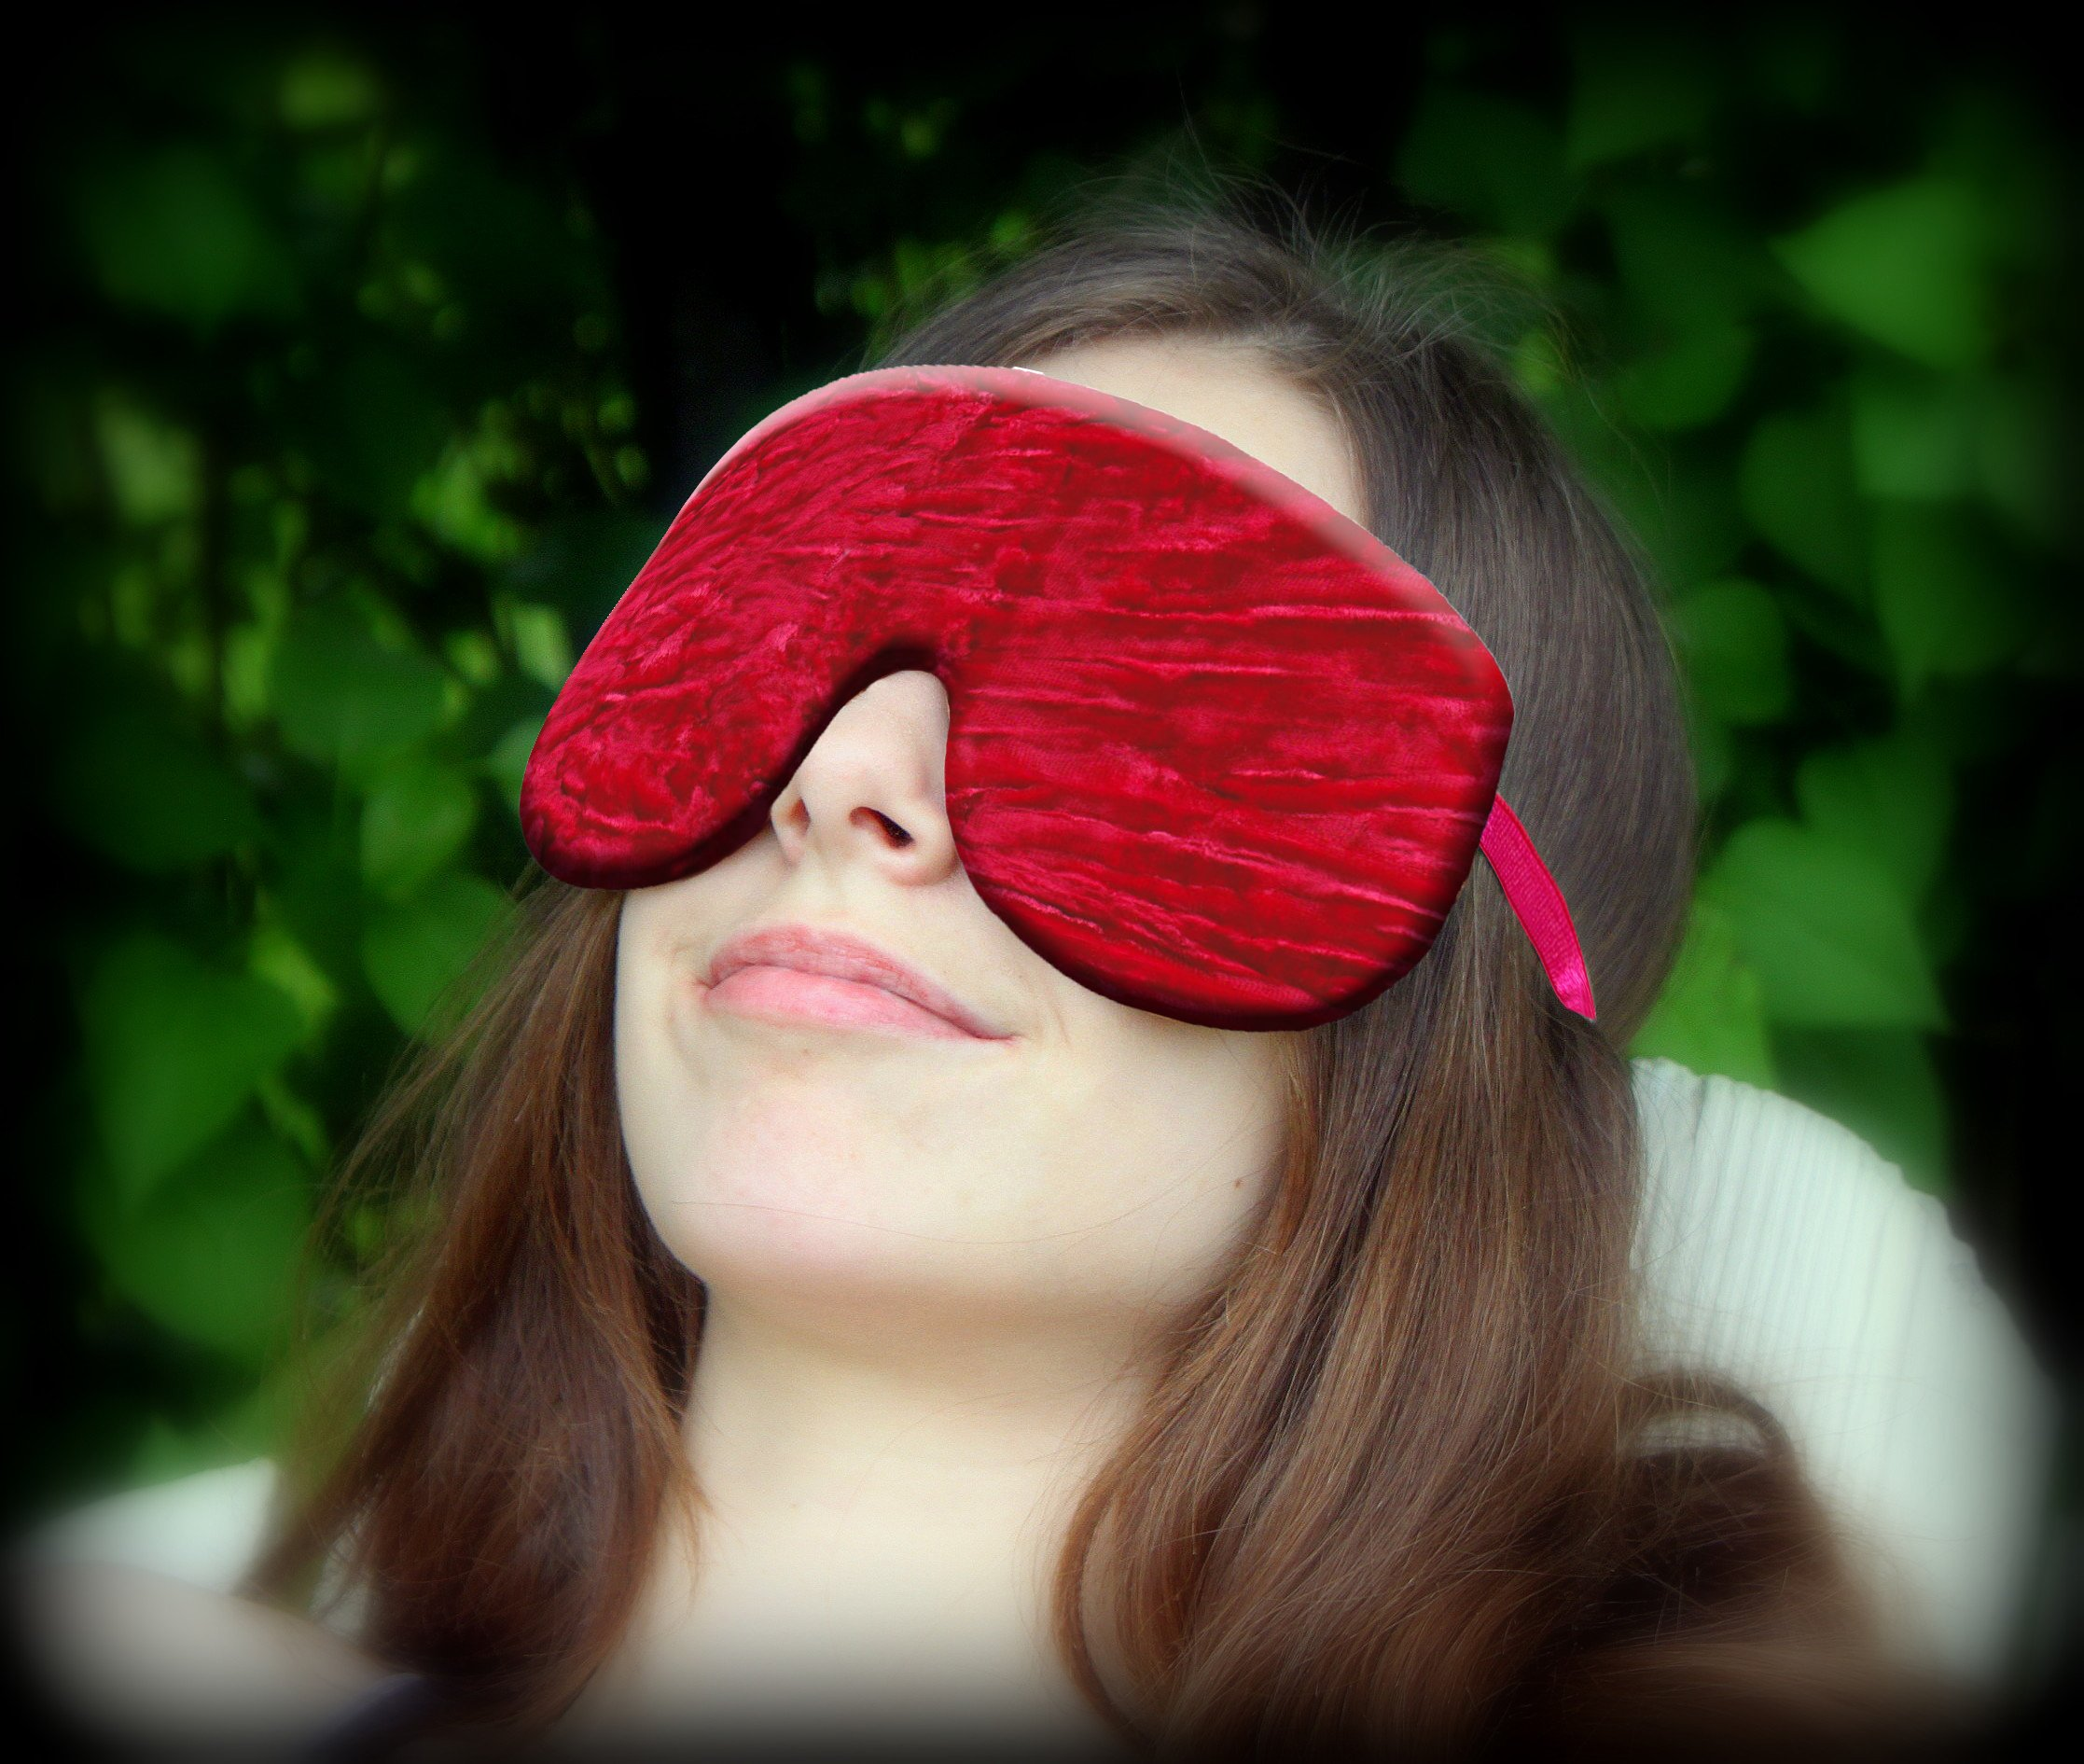 Weighted Sleep Eye Mask Pillow Handmade by Candi Andi - Adjustable Strap - Travel - Flax Seed Fill - Microwavable - Crushed Velvet - Lavender Scented or Unscented - Cherry - TEMVFL-CH